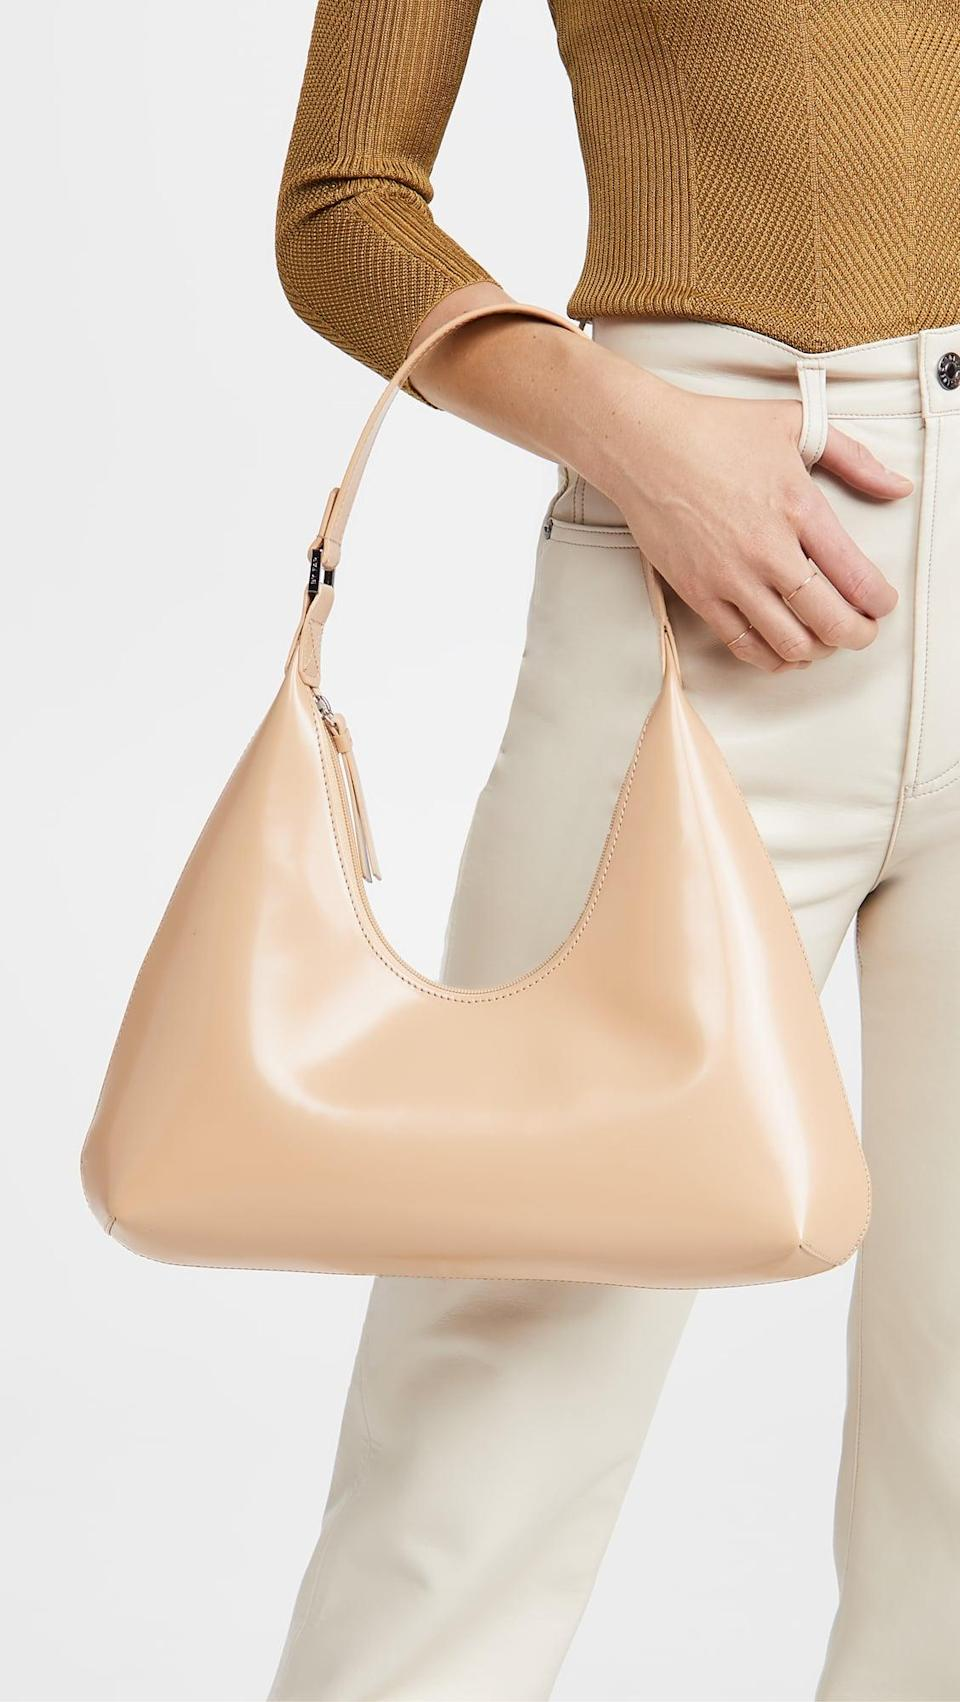 """<p>""""I've been seeing the <span>BY FAR Amber Bag</span> ($634) all over my Instagram feed and am convinced. The chic silhouette is perfect for everyday, and easy to throw on with sweats or jeans. Plus, the cute tan shade will look good with everything this spring and summer."""" - Krista Jones, associate editor, Shop</p>"""